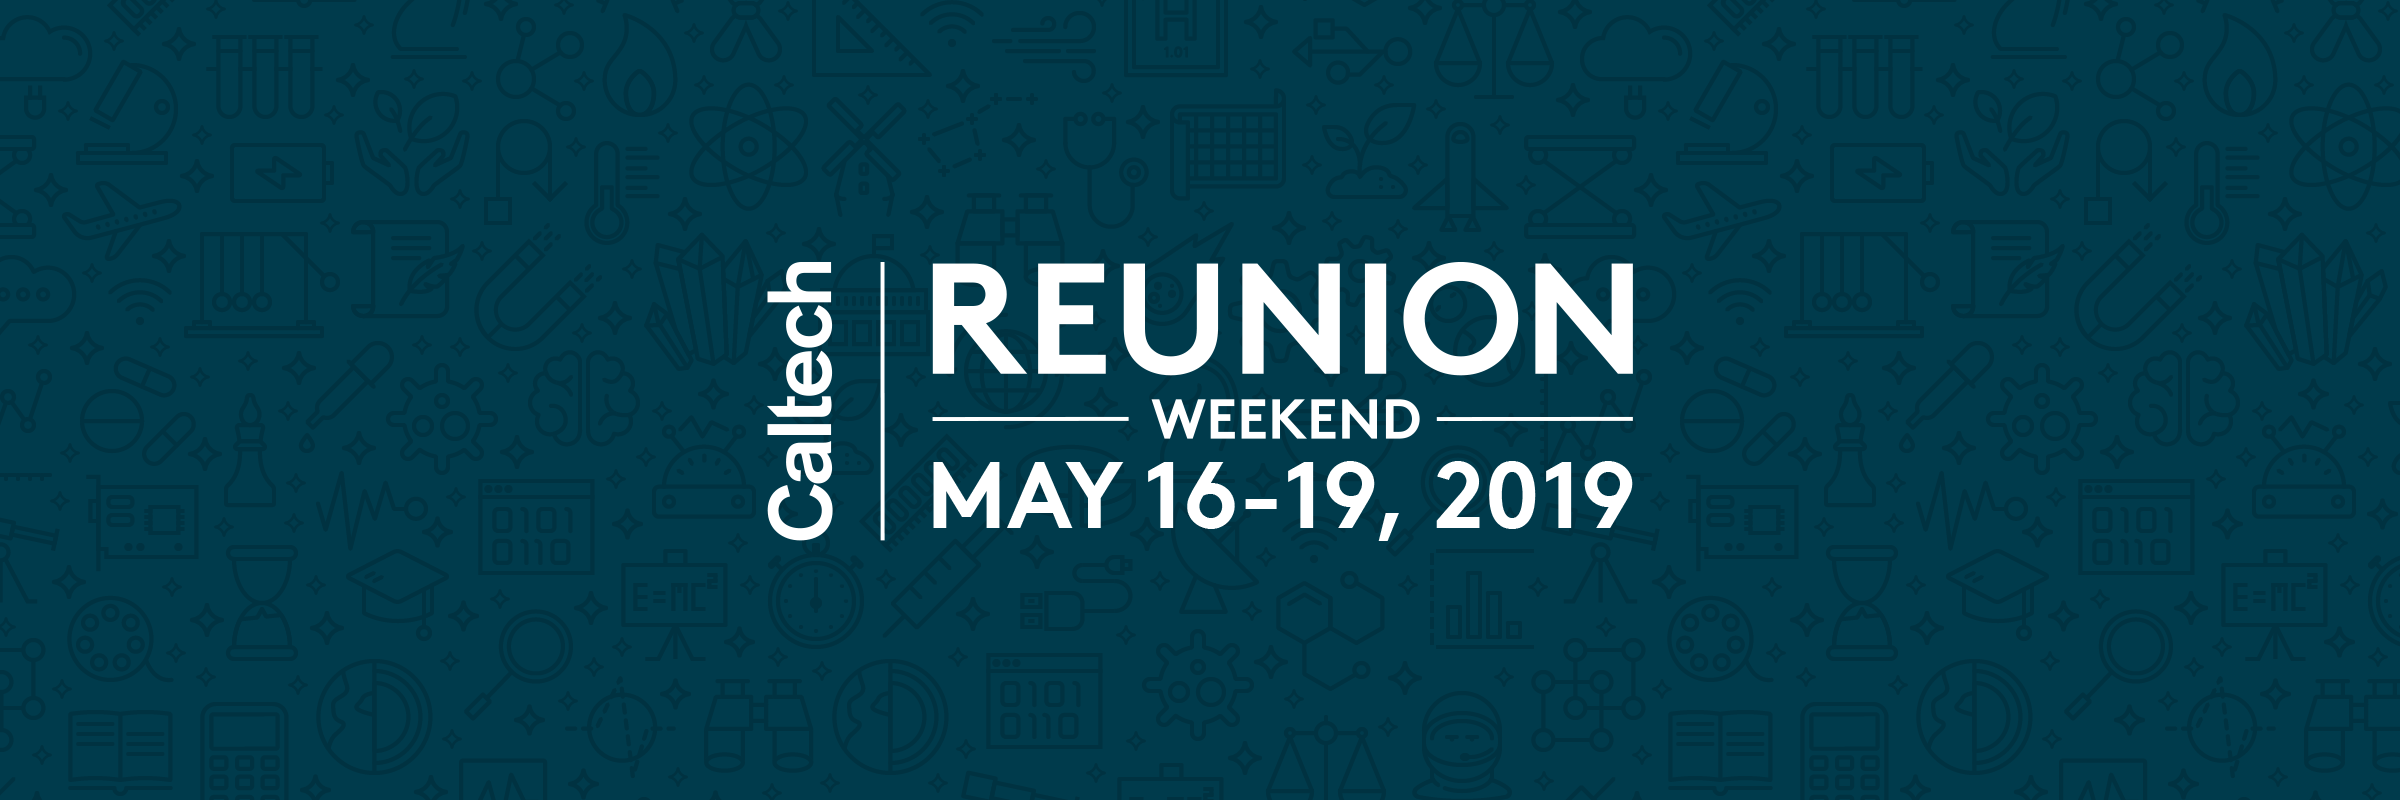 reunion2019_1619_banner.png